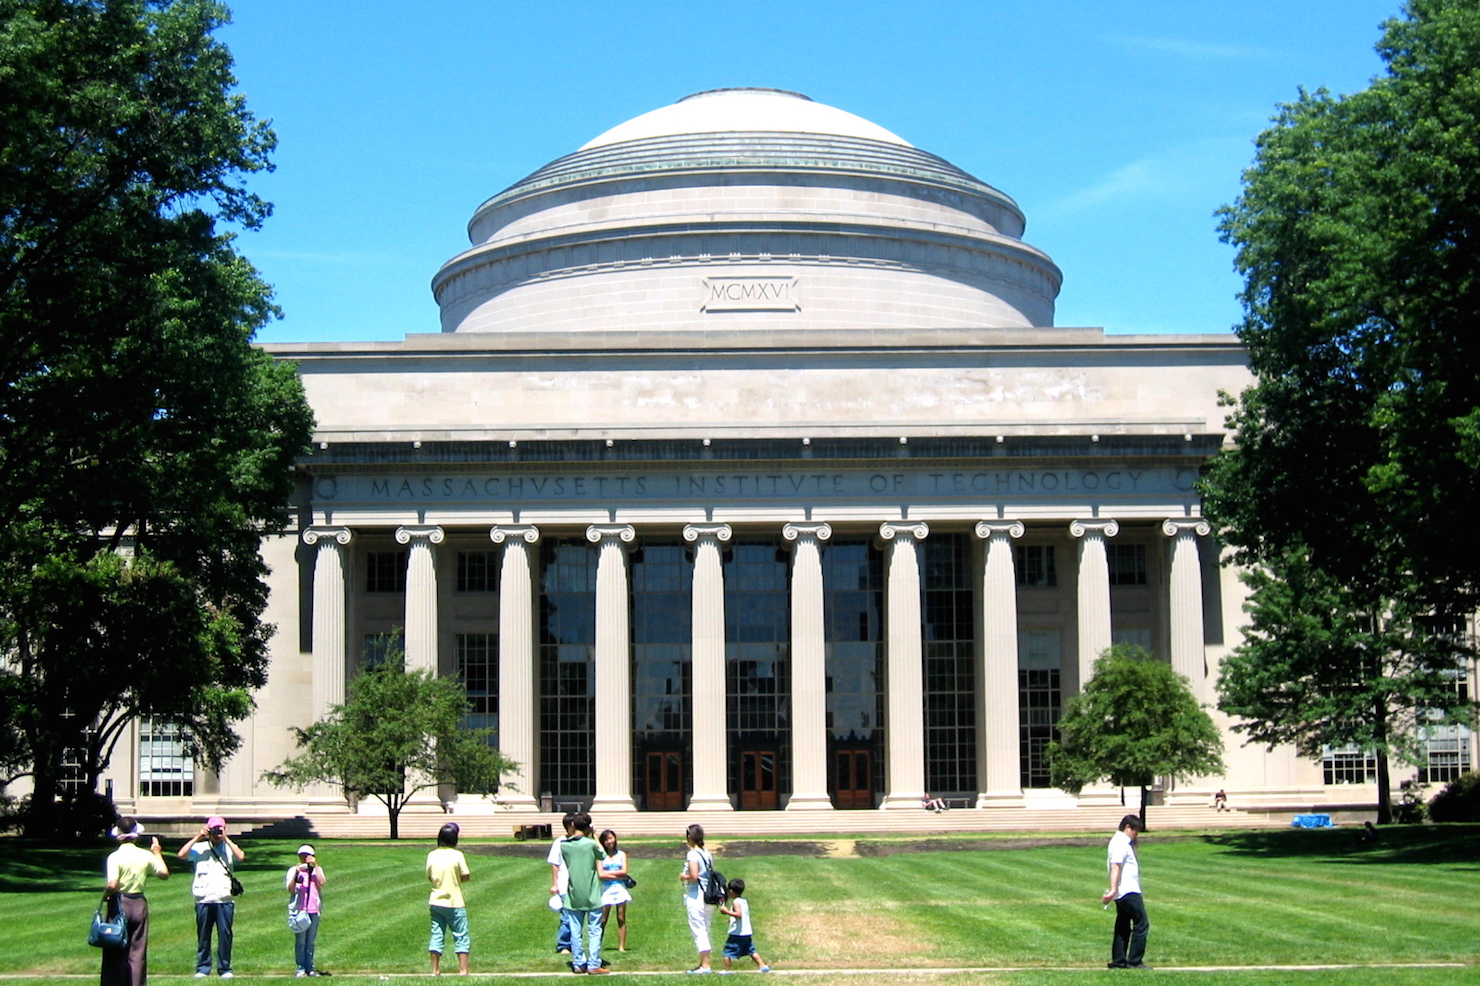 MIT campus stock image